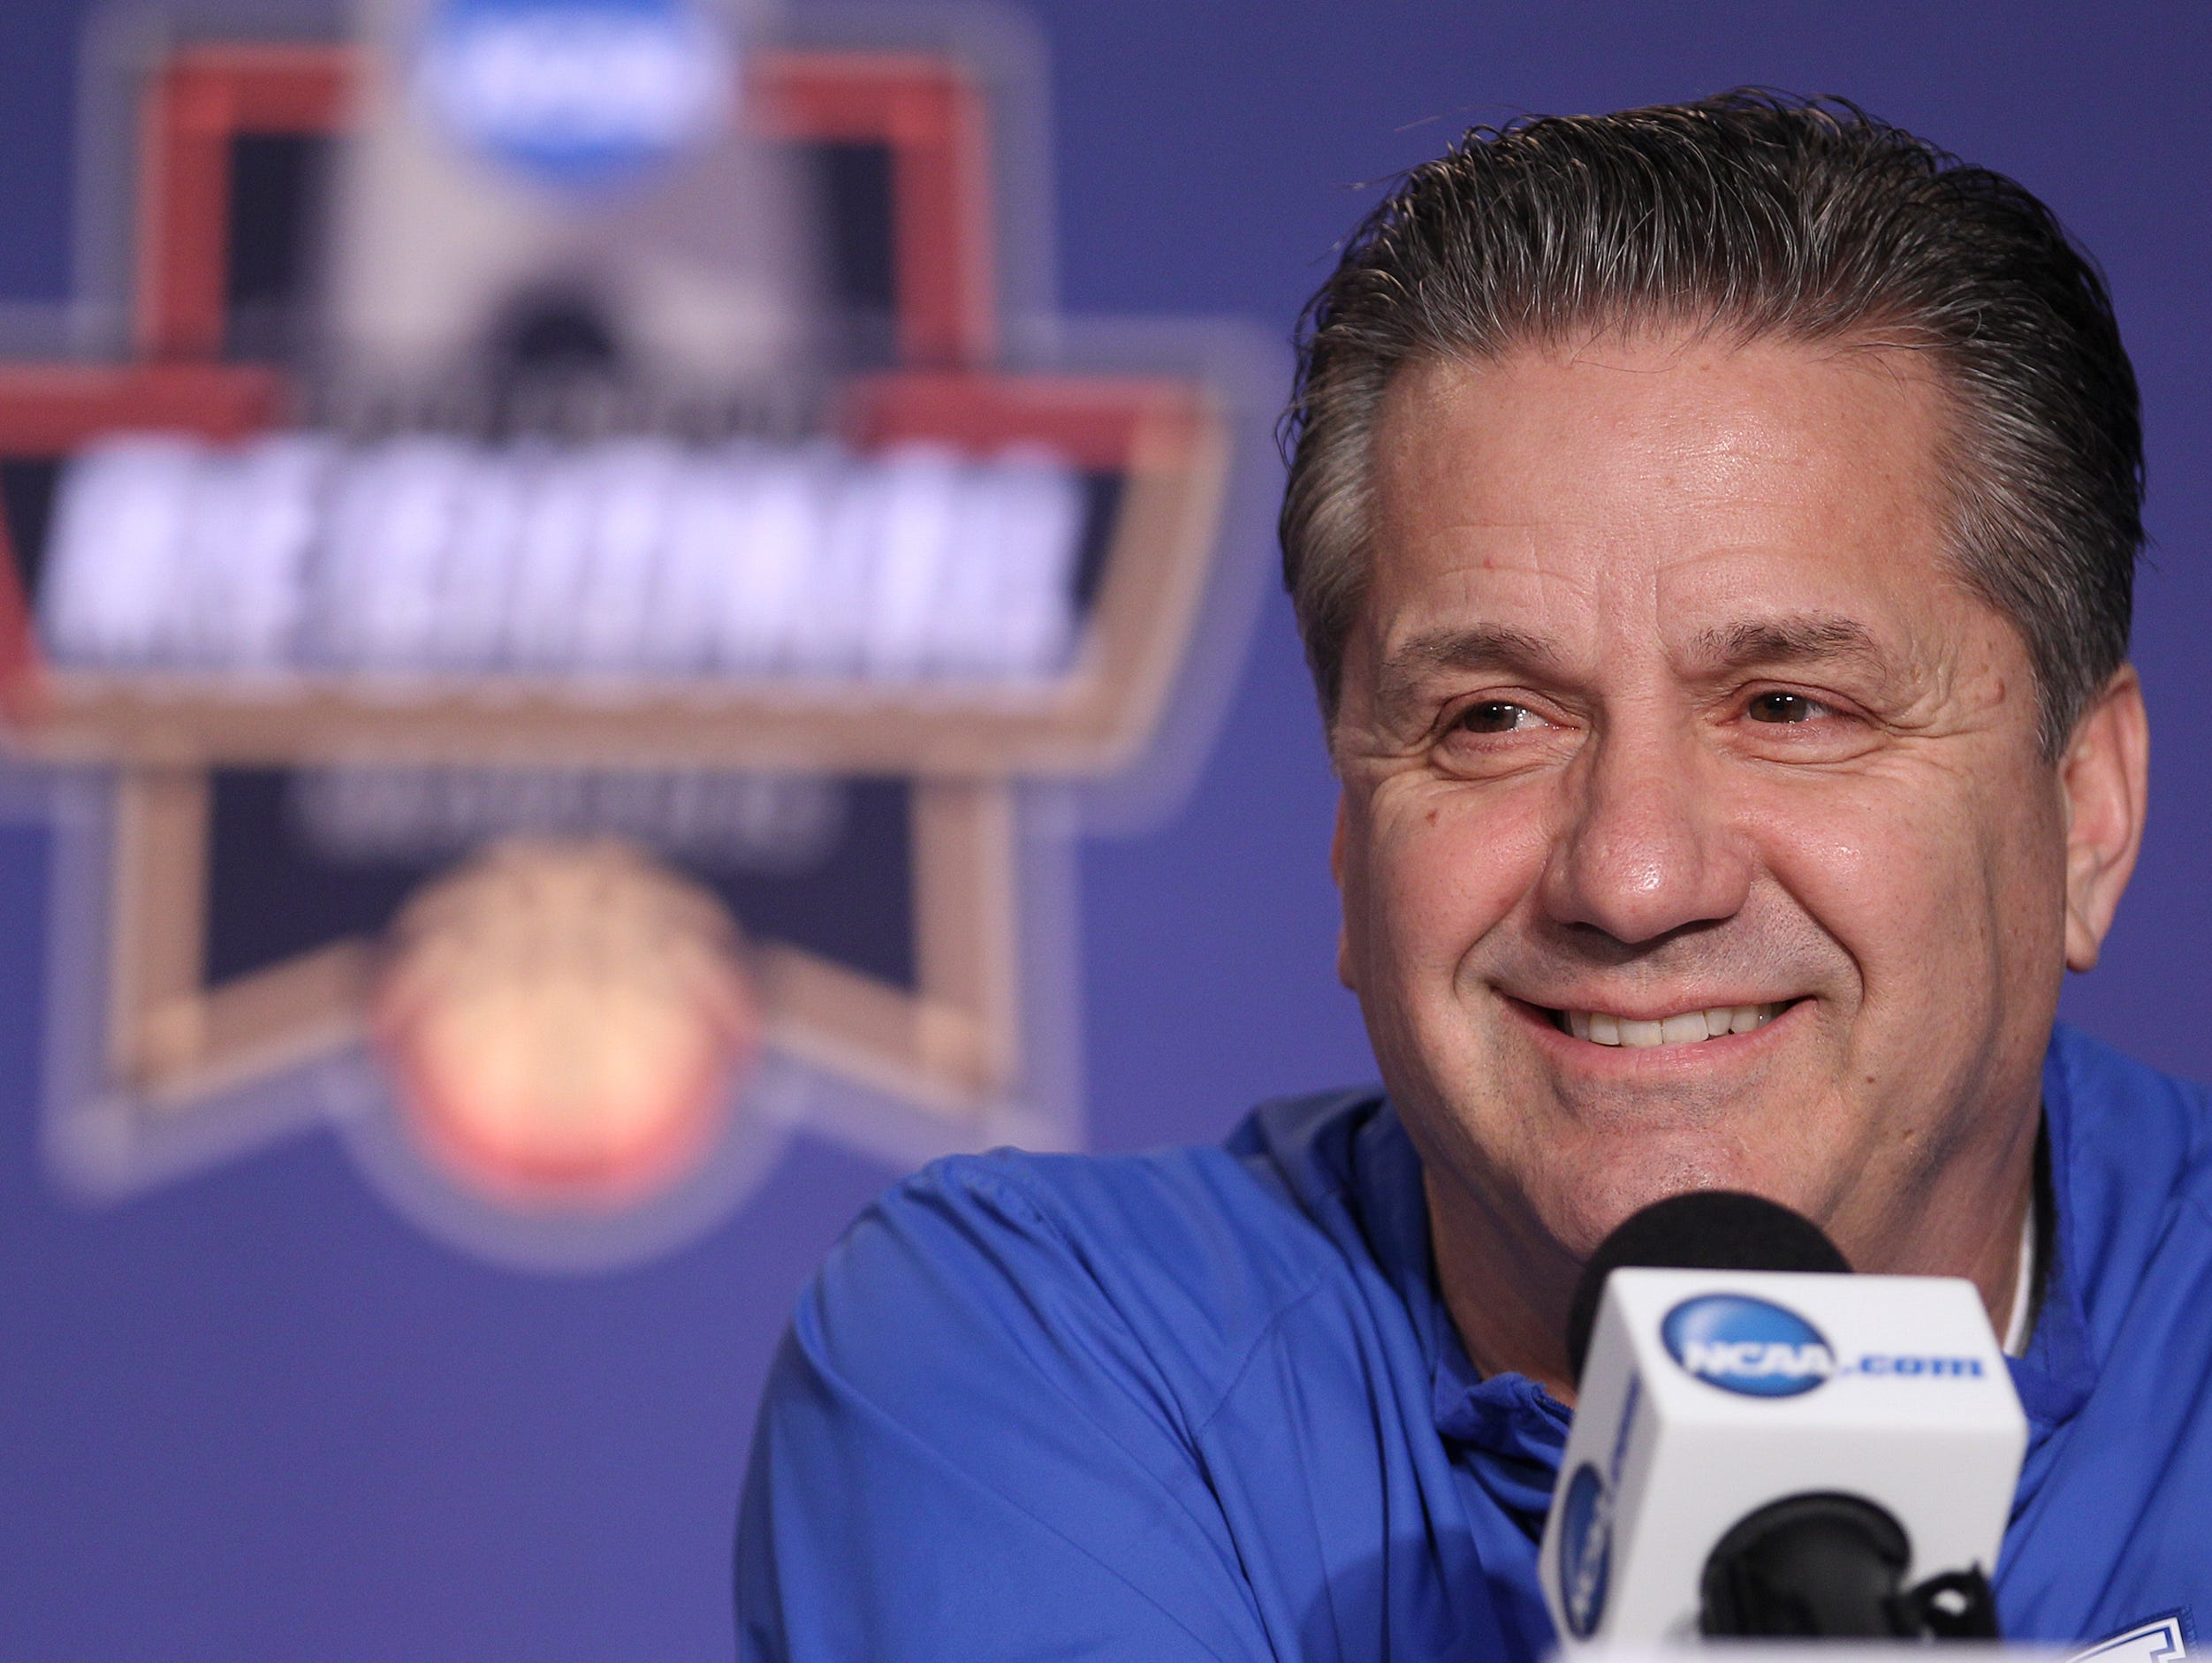 John Calipari speaks during the off-day press conference in Memphis. The Cats will take on North Carolina Sunday afternoon in Memphis to advance to the Final Four. March 25, 2017